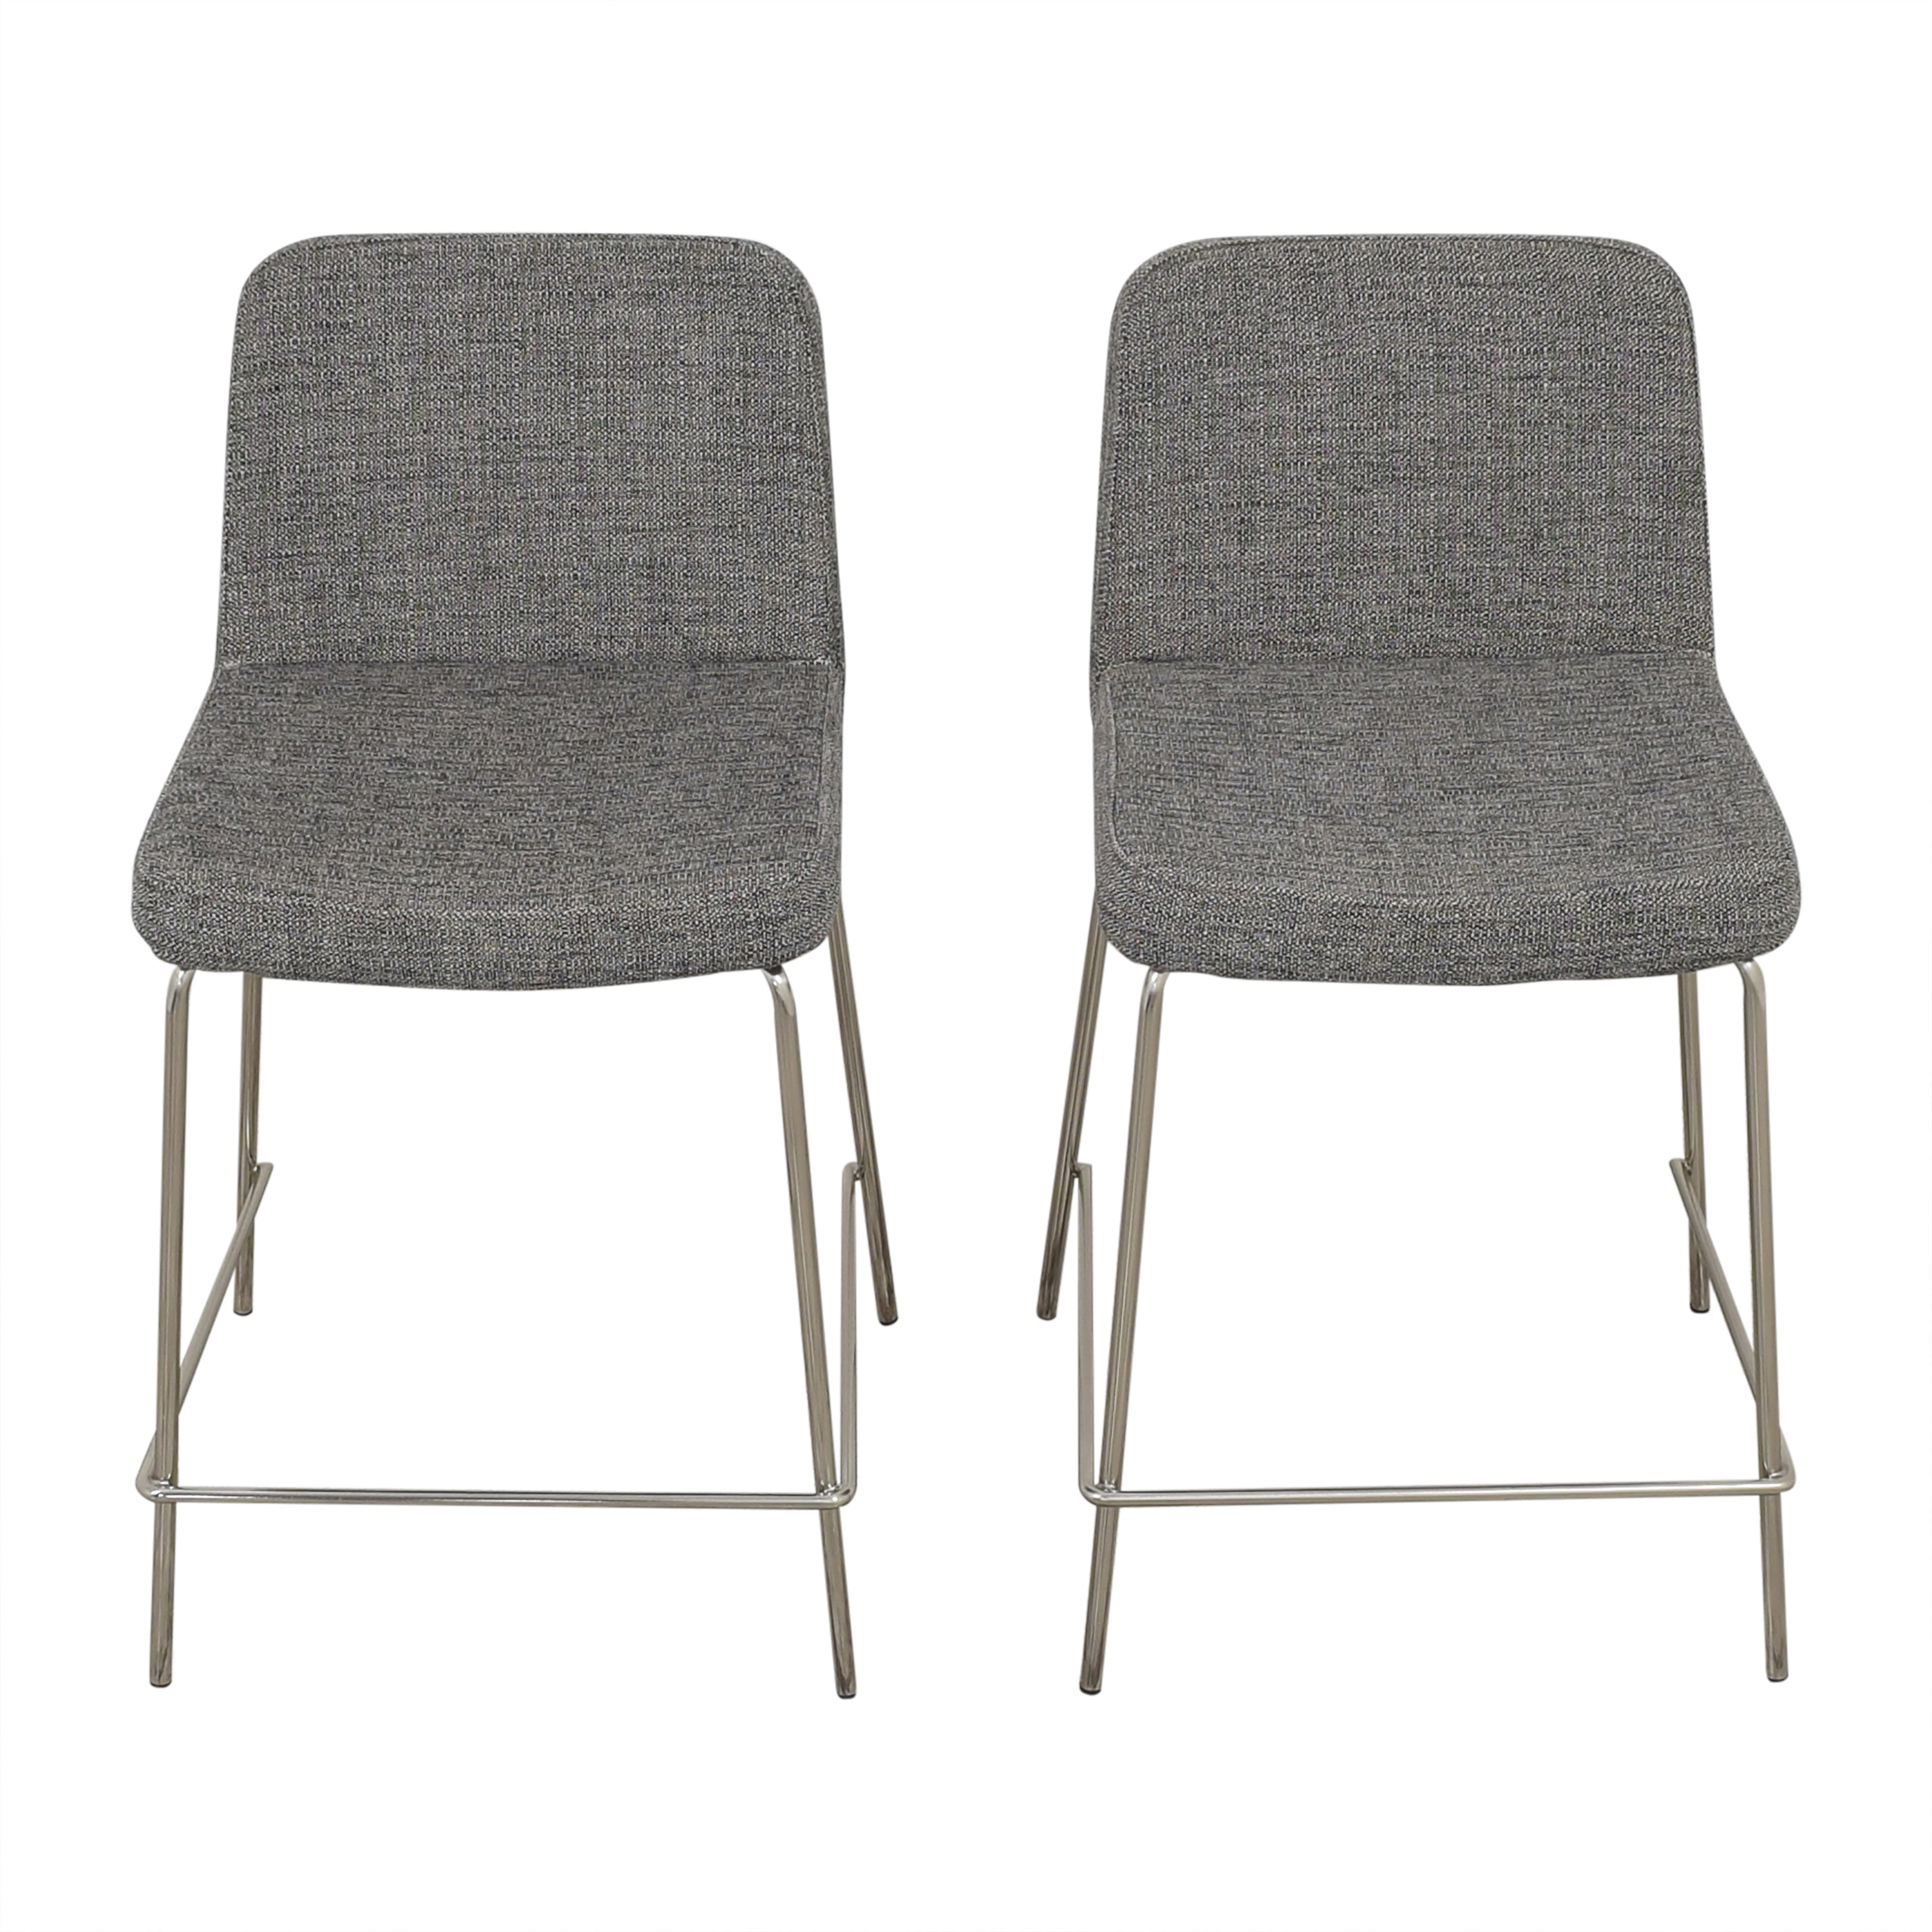 CB2 CB2 Charlie Counter Stools on sale